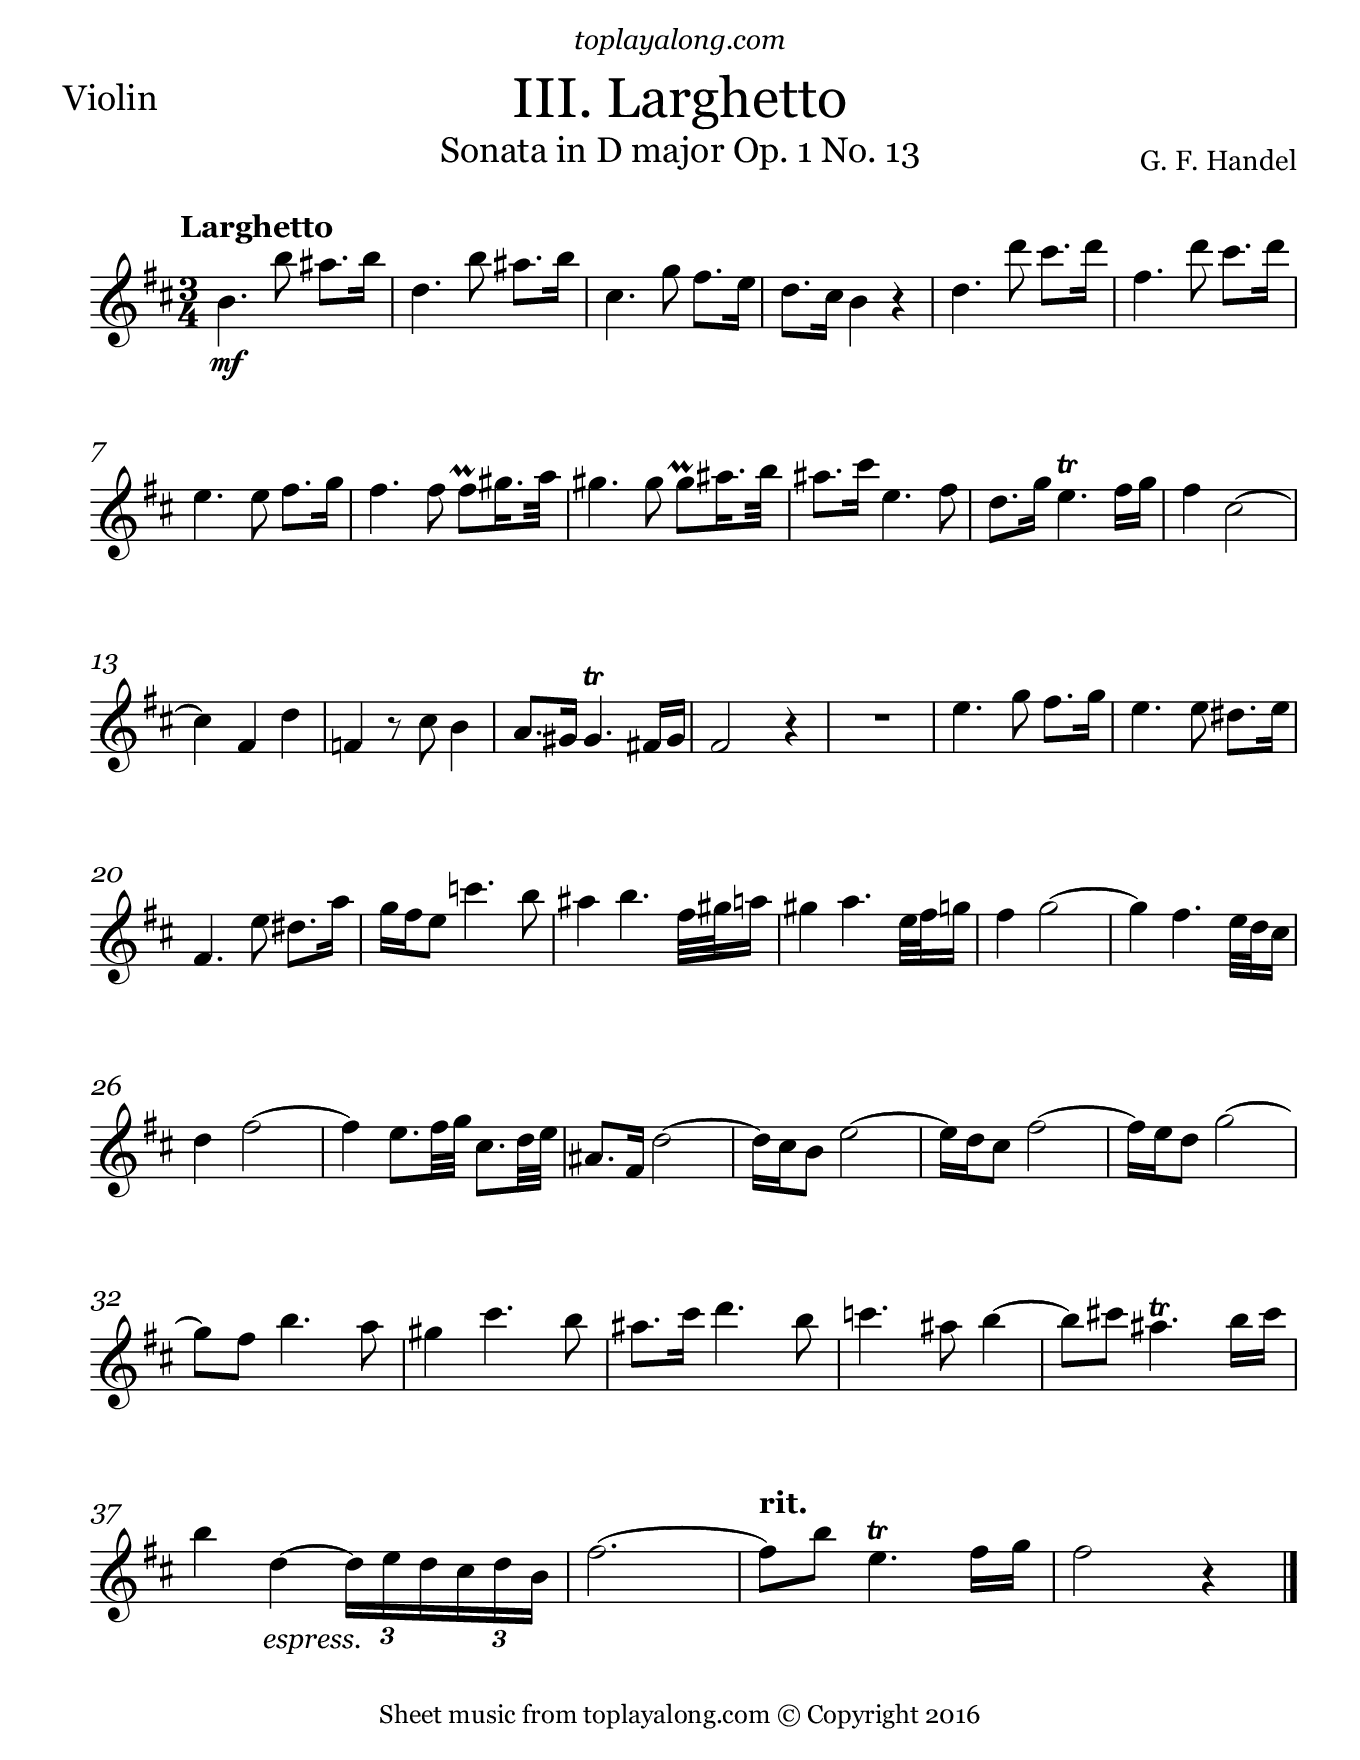 Violin sonata in D major (III. Larghetto) by Handel. Sheet music for Violin, page 1.